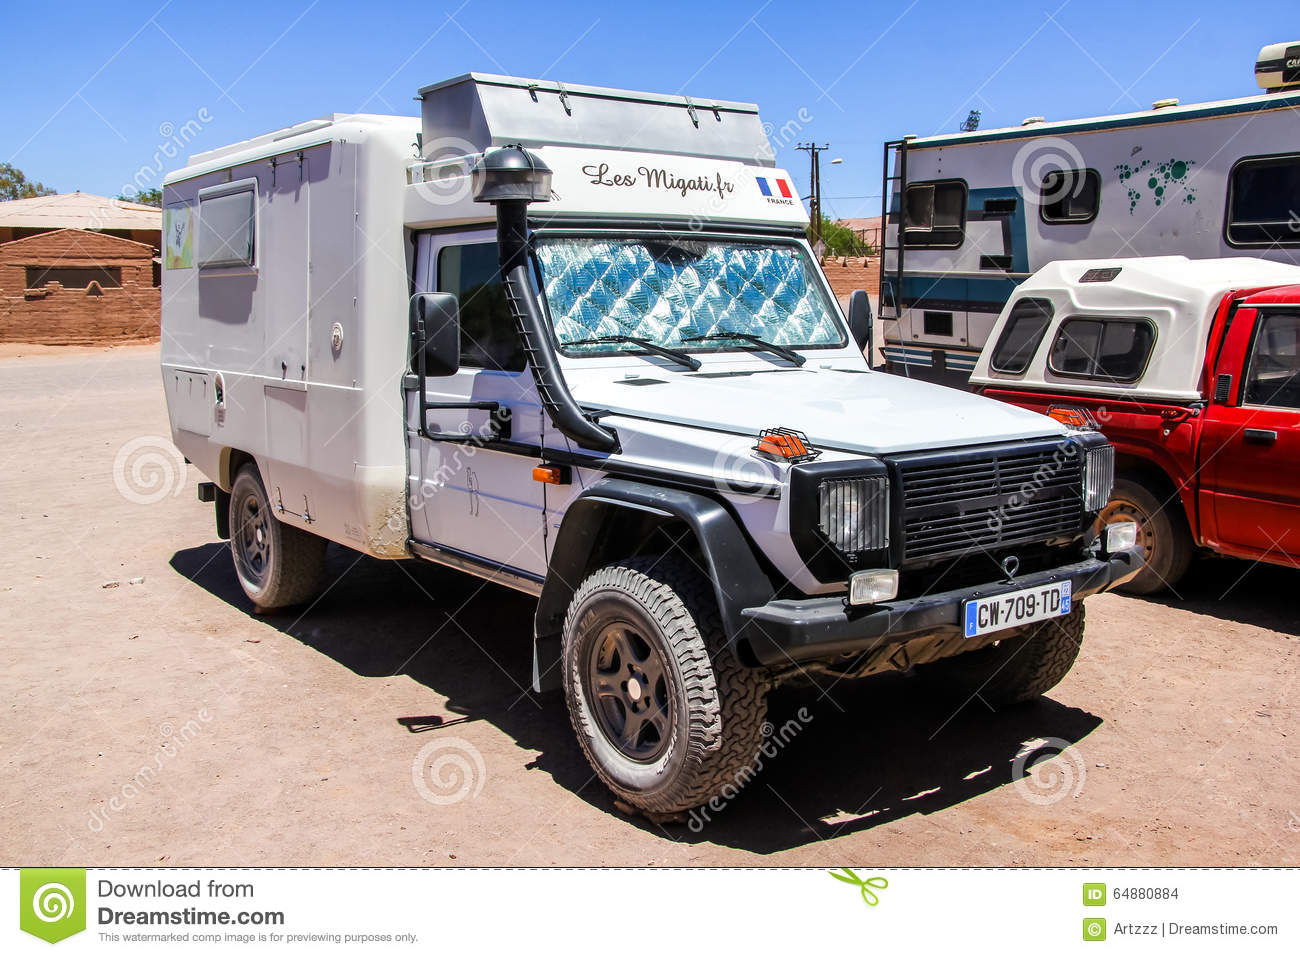 Mercedes benz w461 g class editorial stock image image of for Mercedes benz campervan usa